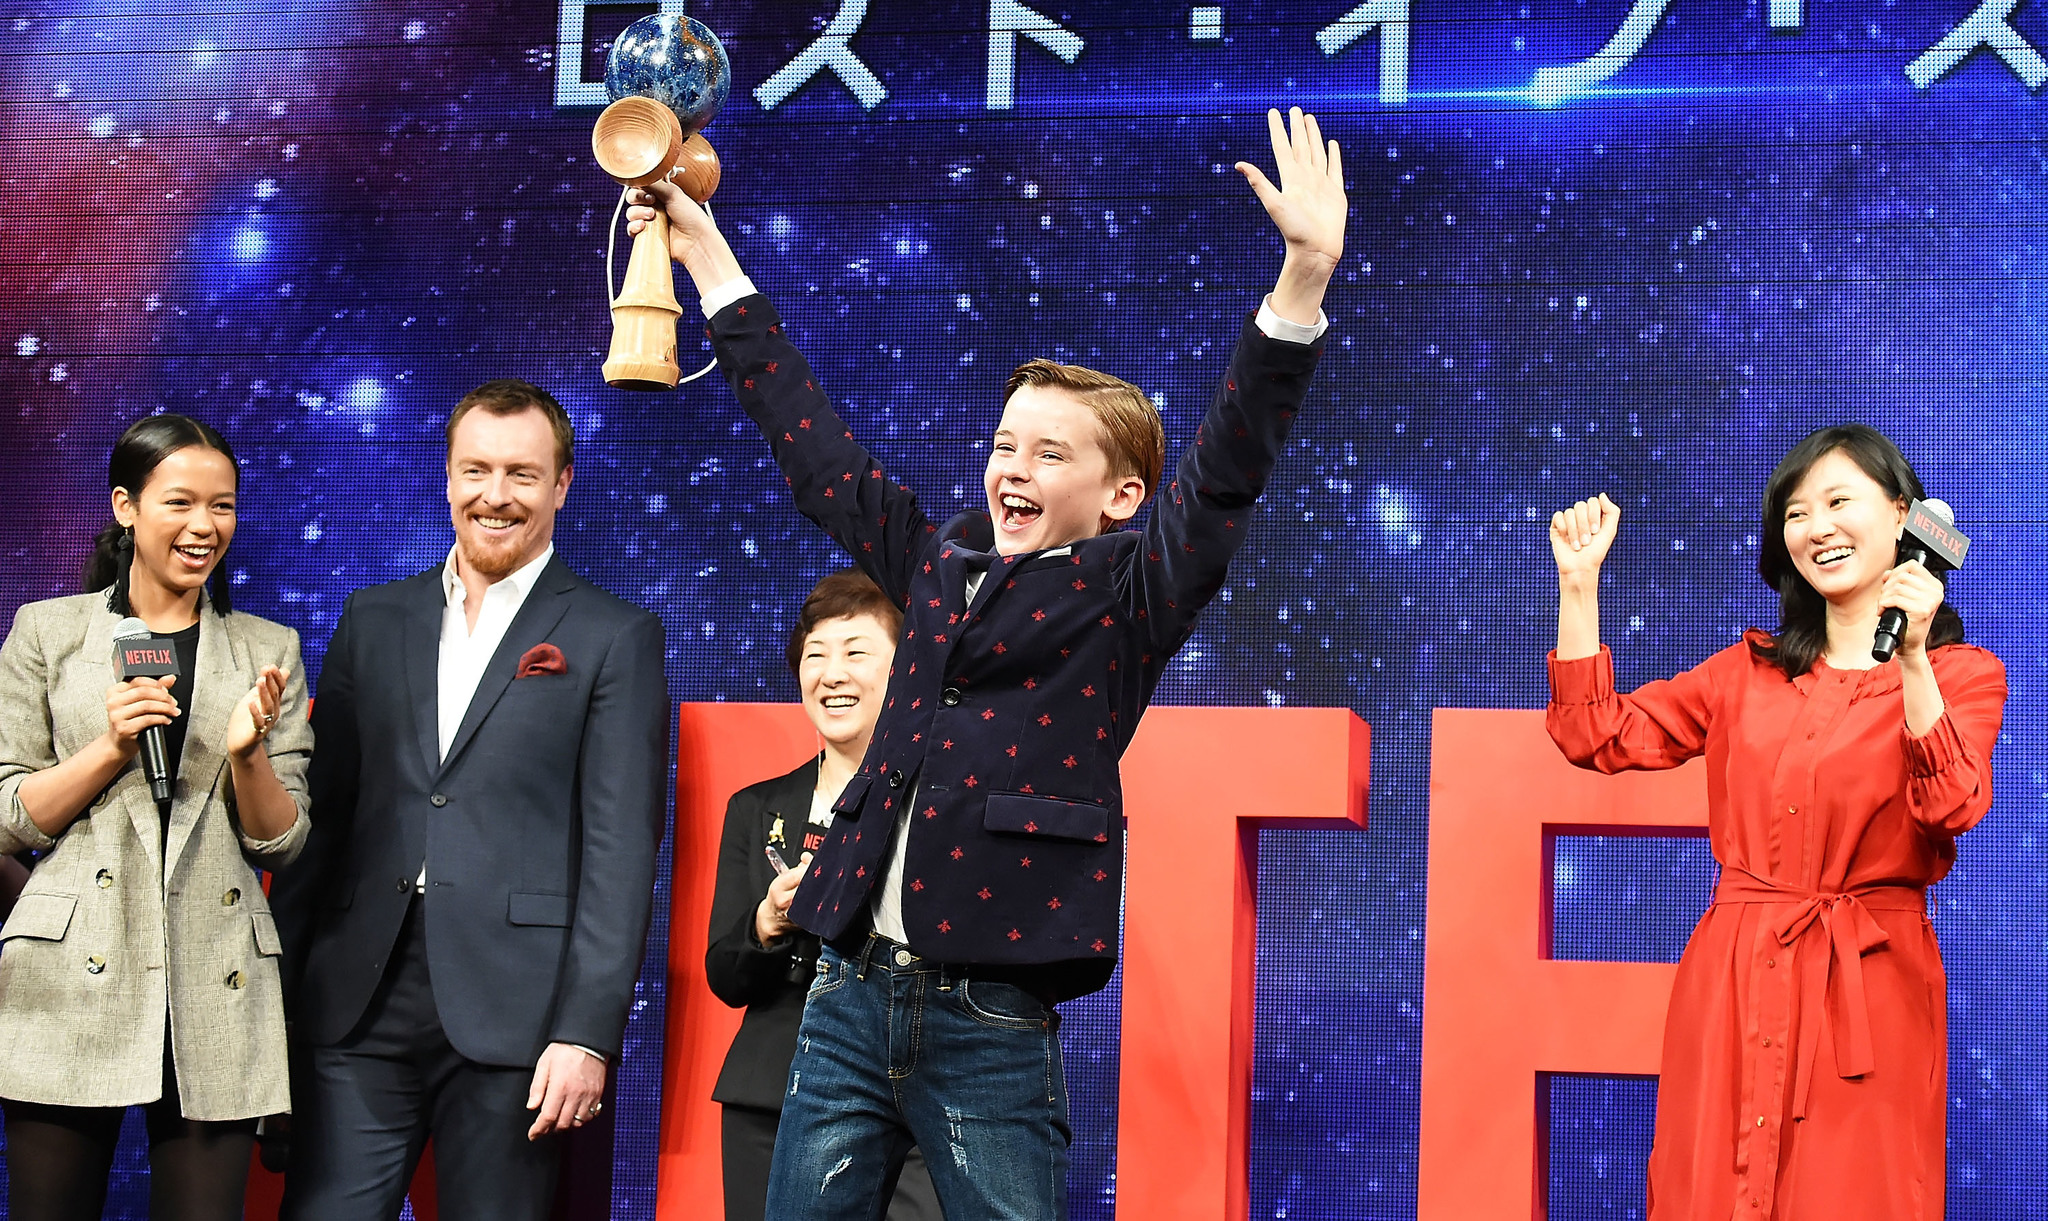 Toby Stephens, Rei Kikukawa, Maxwell Jenkins, and Taylor Russell at an event for Lost in Space (2018)